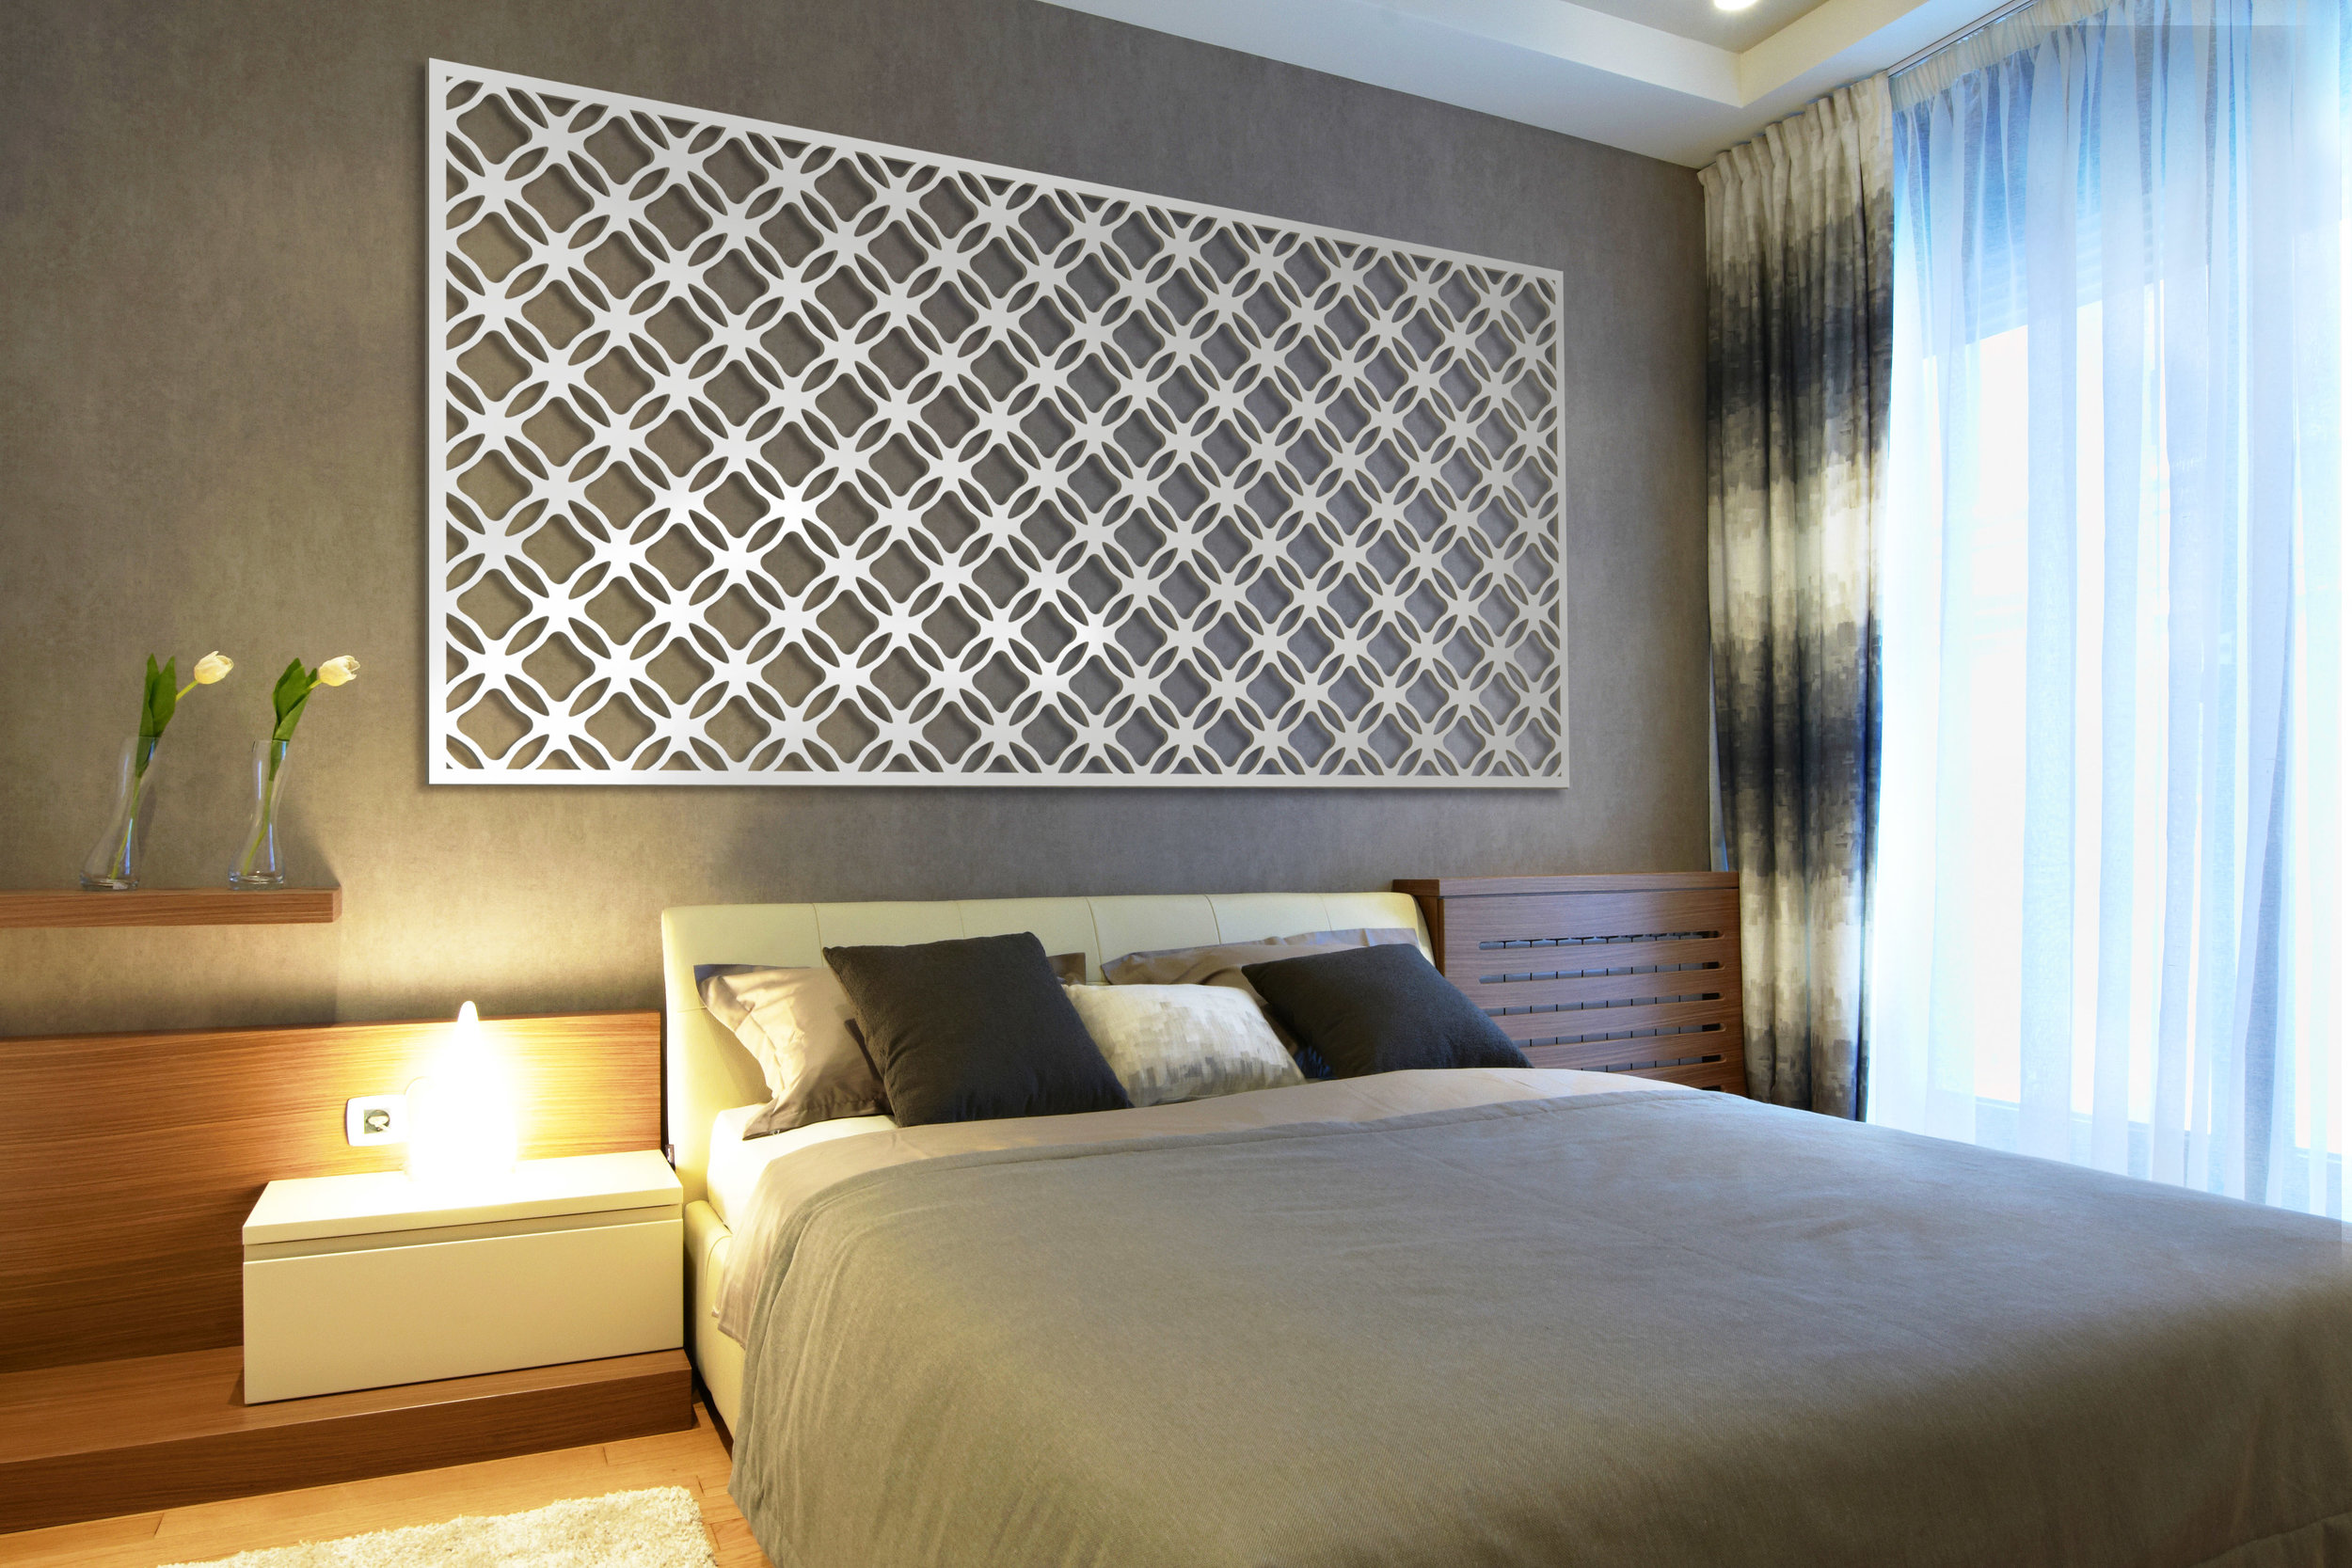 Installation Rendering C   Cube Vibrations decorative hotel wall panel - painted